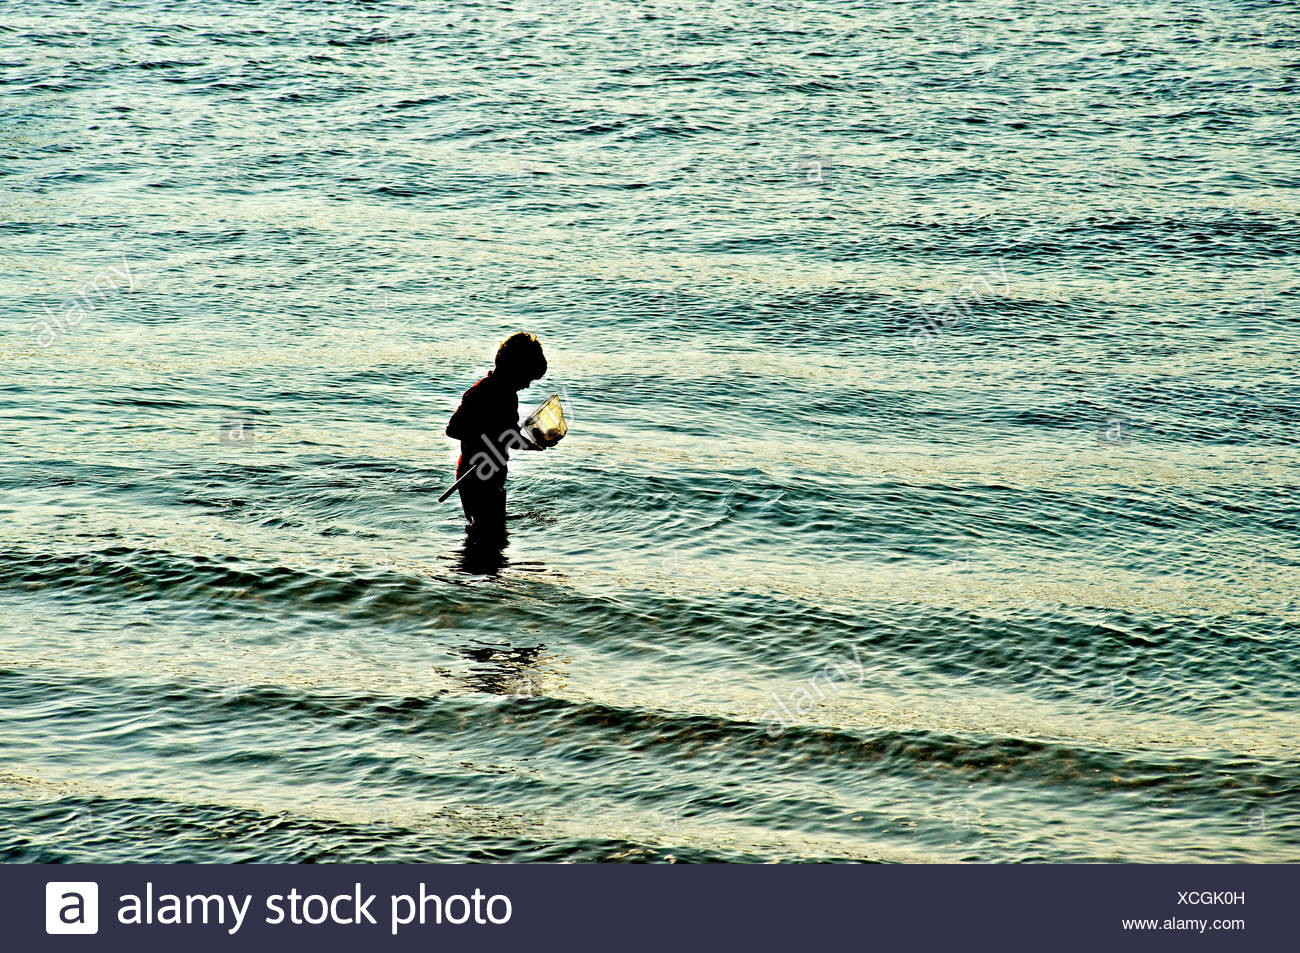 Boy with fishing net in shallow ocean water, Cape Cod, MA, USA - Stock Image